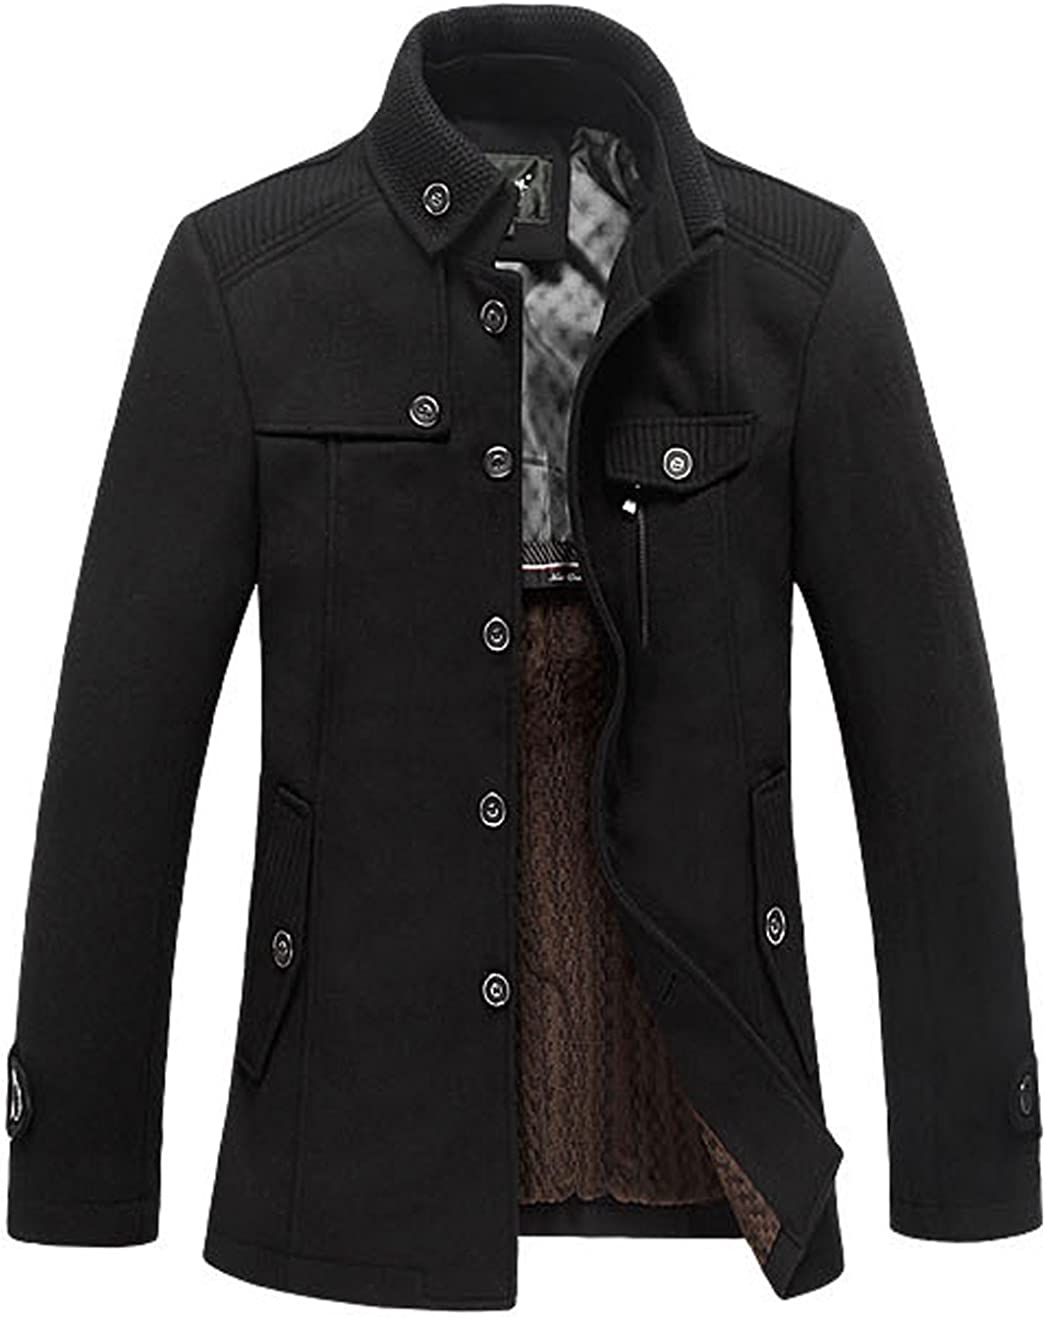 chouyatou Mens Stand Collar Wool Blend Single Breasted Pea Coat Fleece Lined